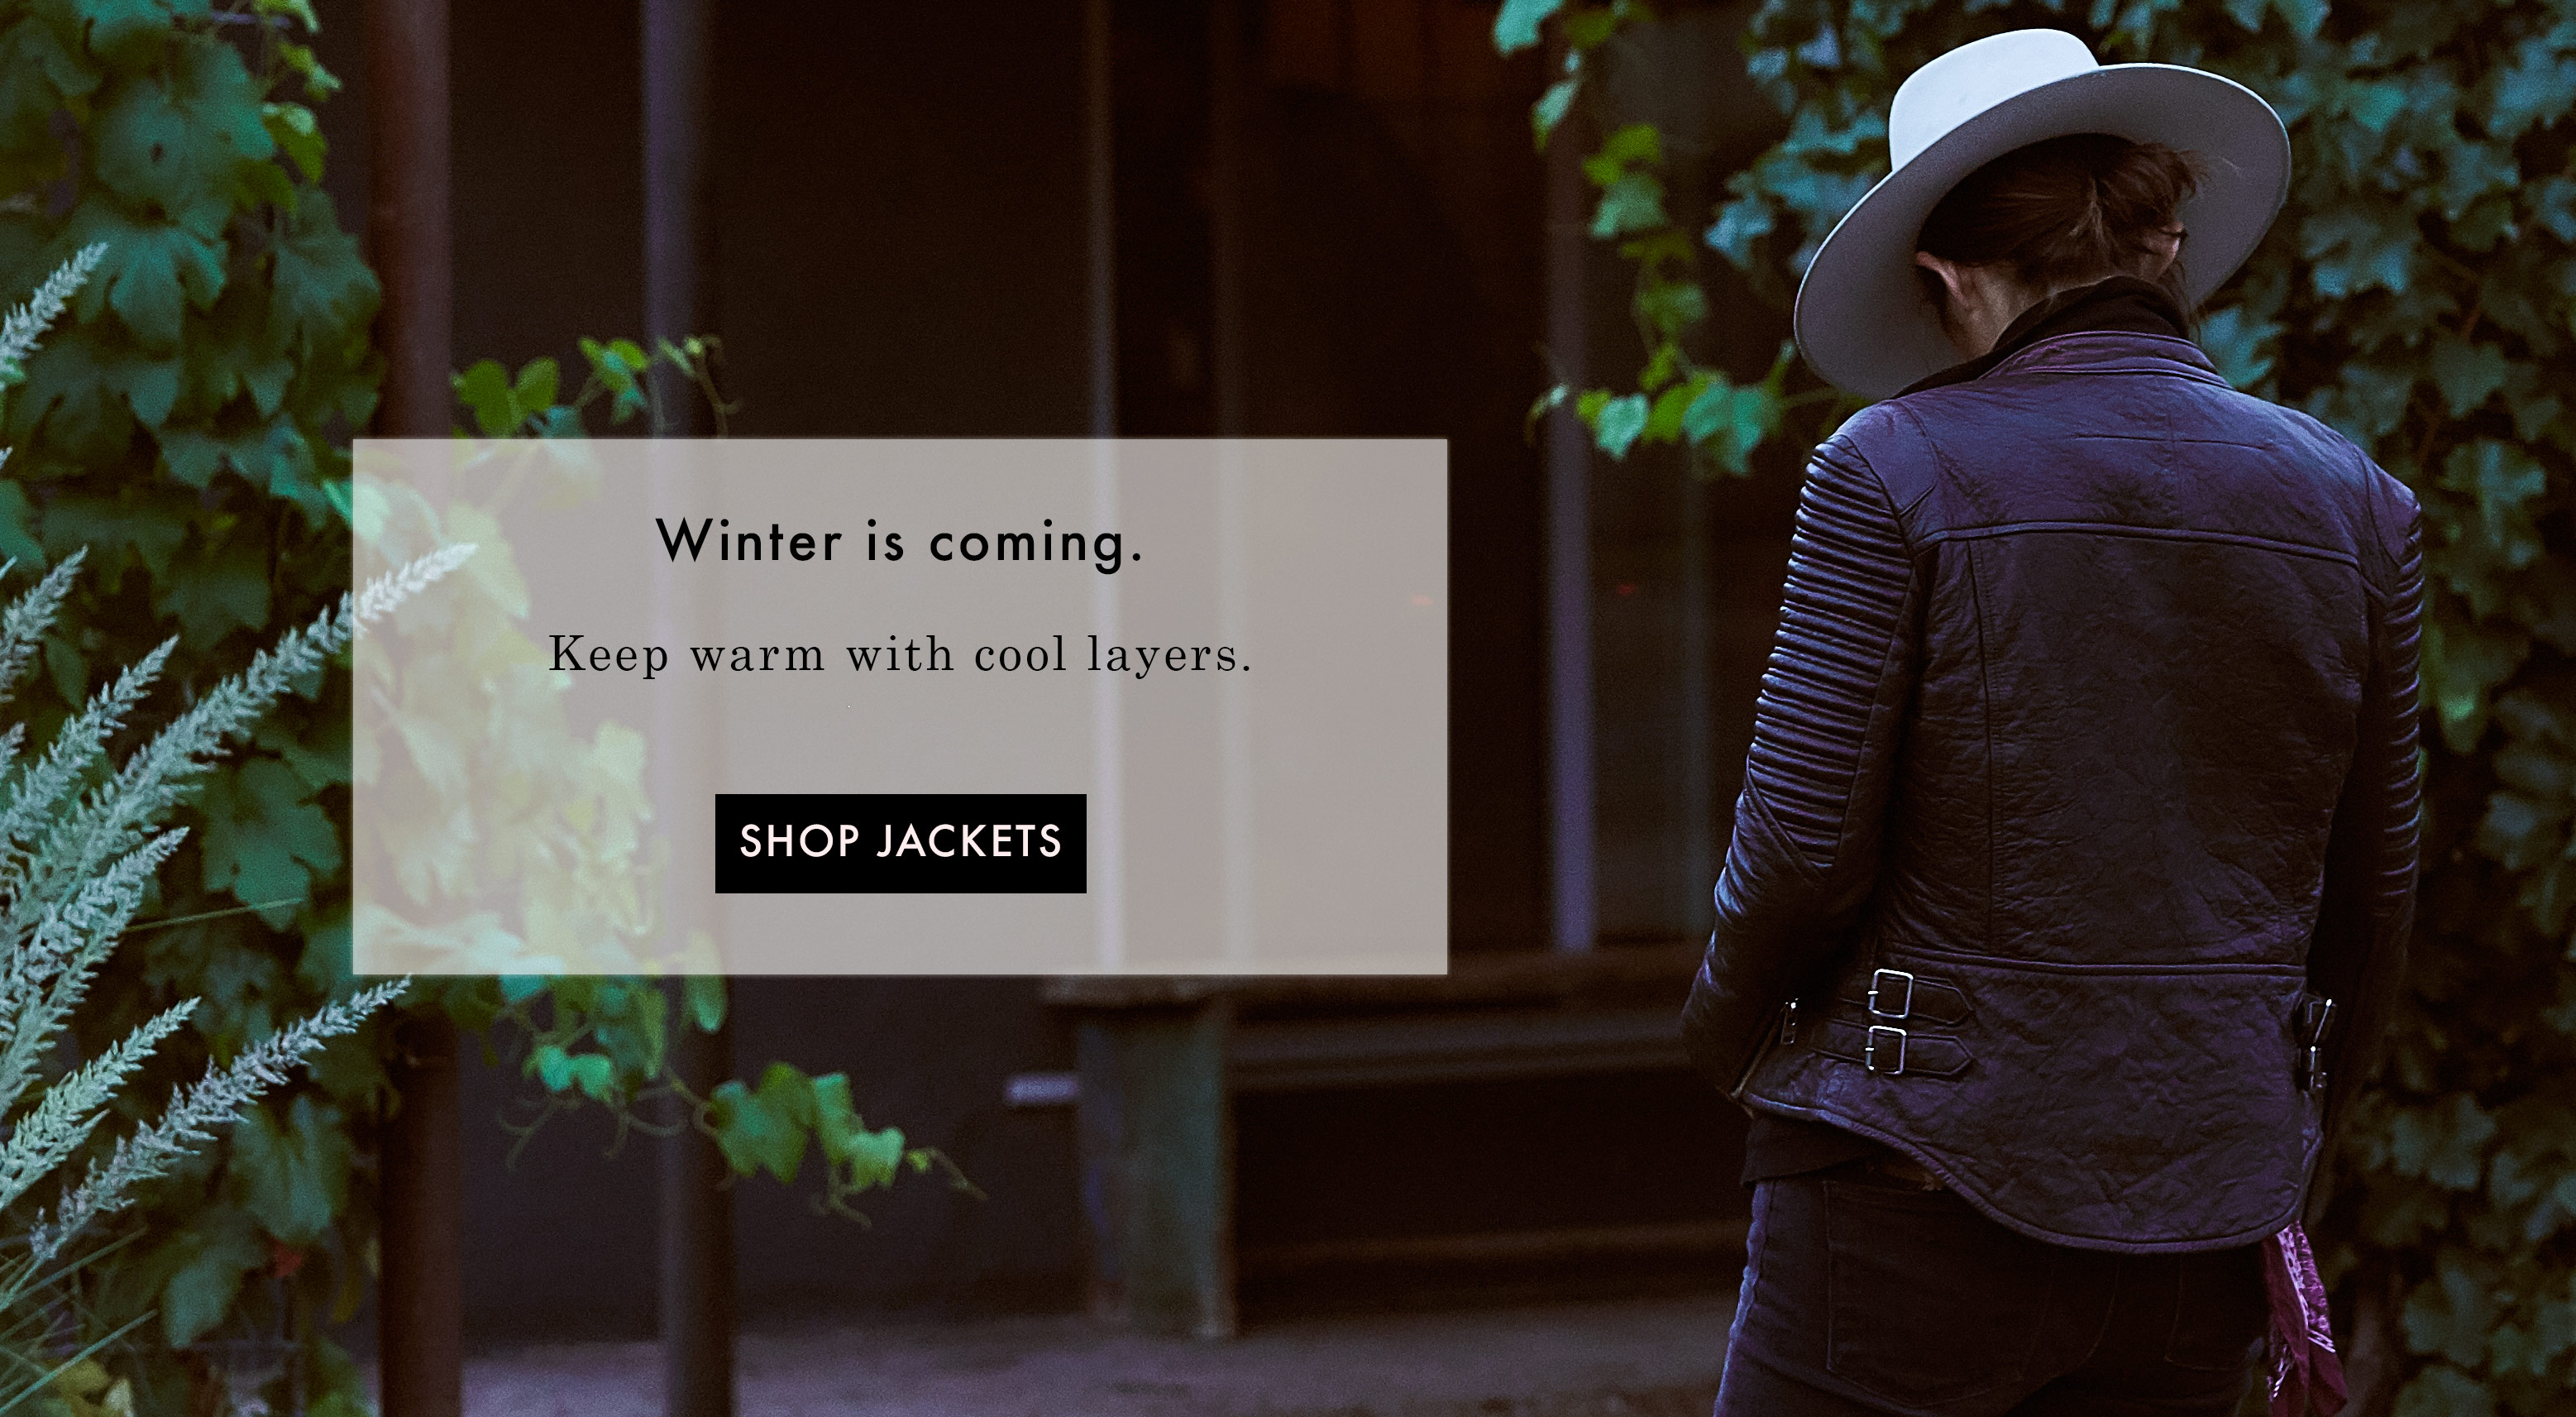 shopjackets-1.jpg